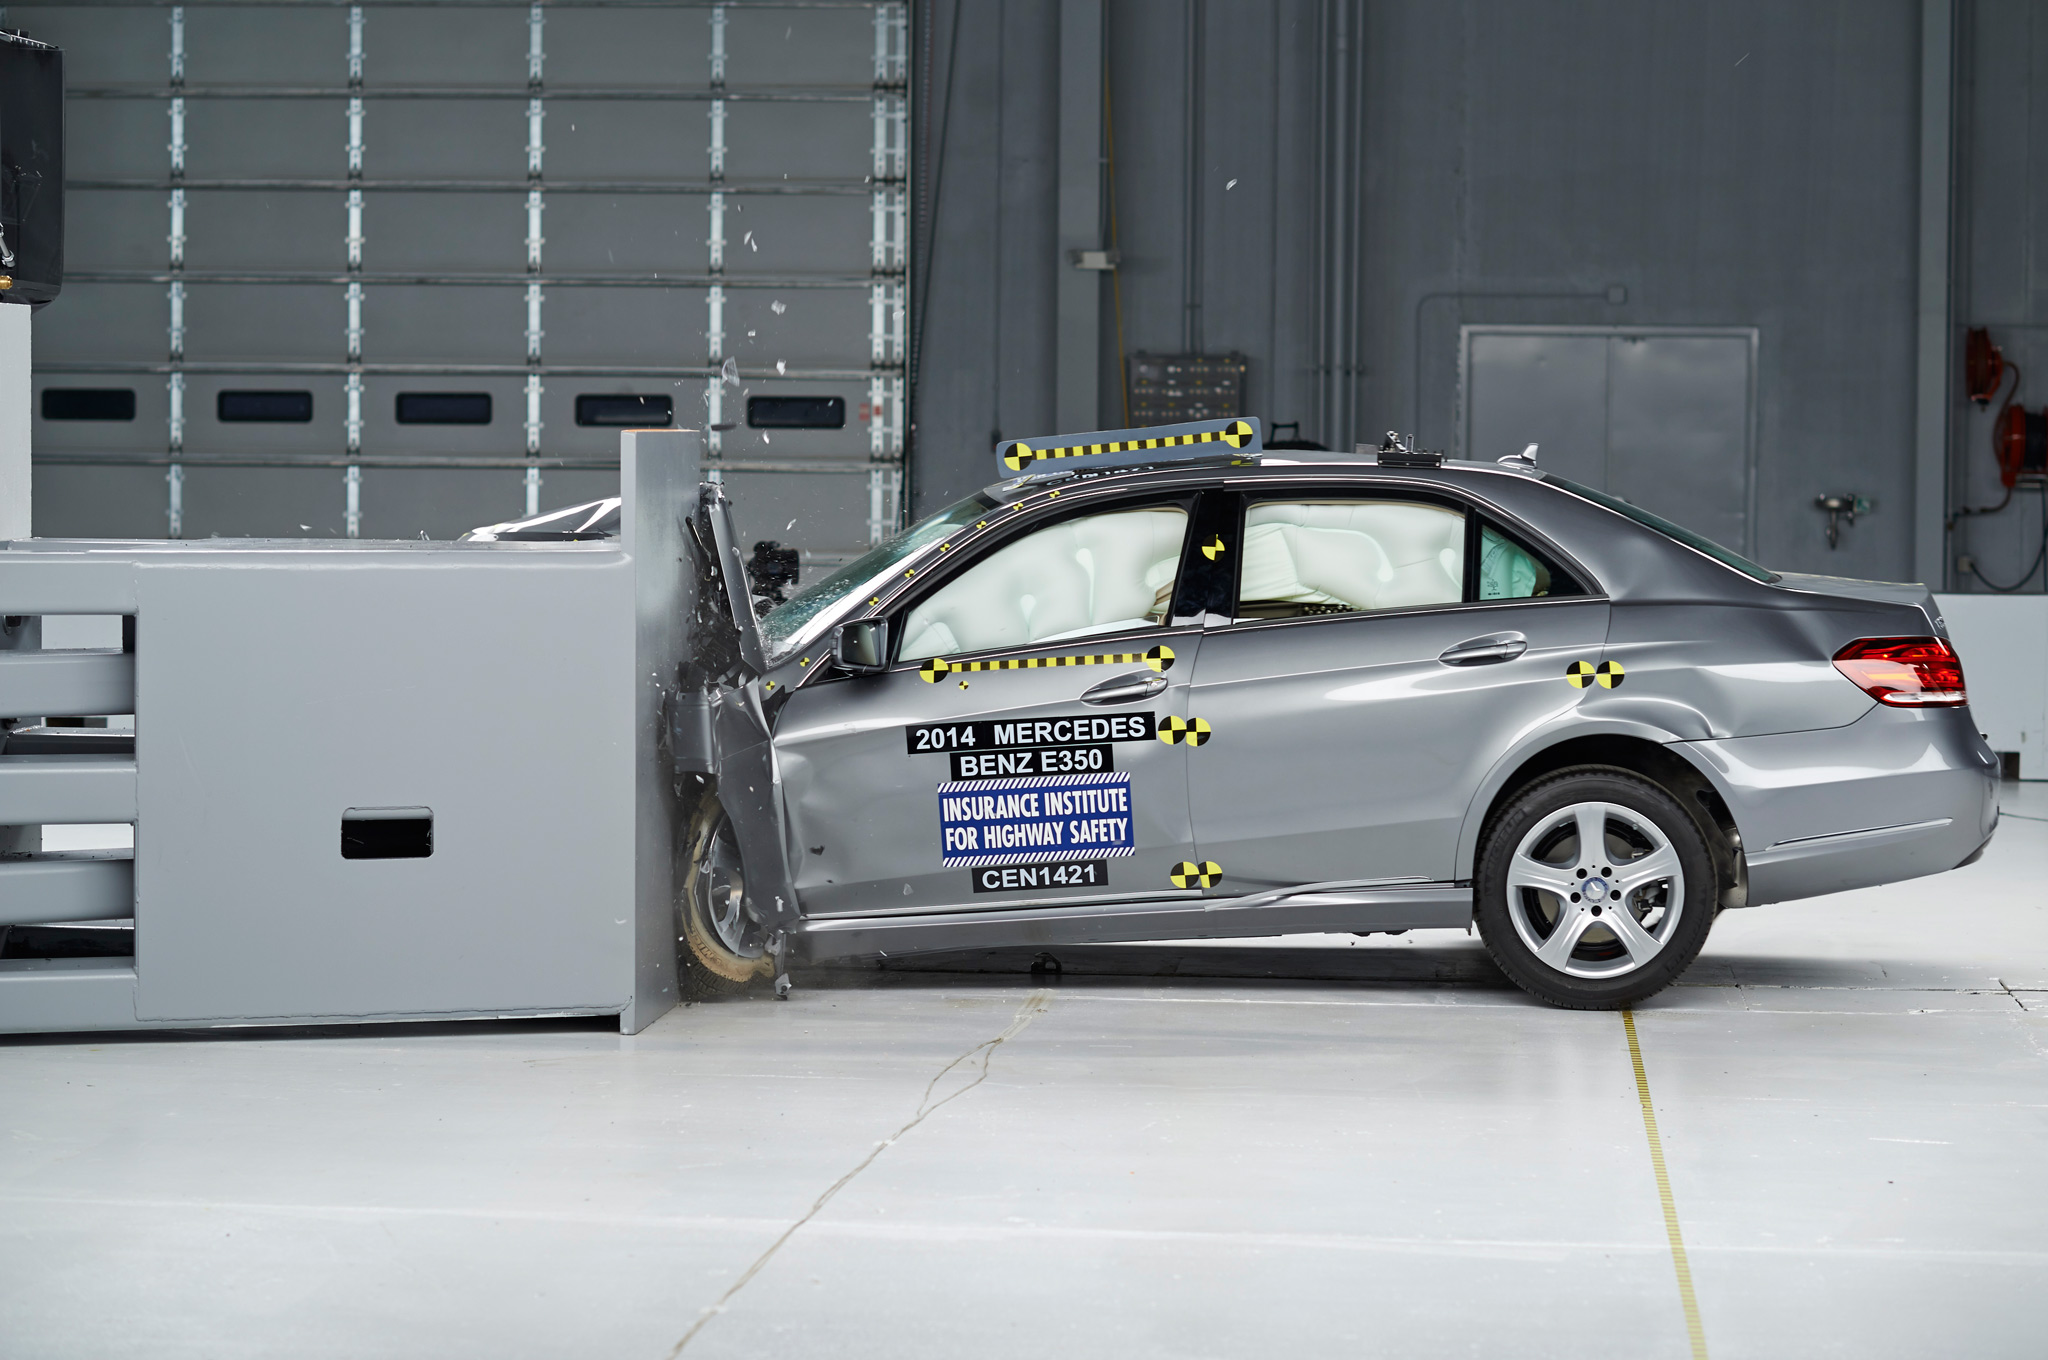 2014 Mercedes E-Class Nabs IIHS Top Safety Pick+ Rating